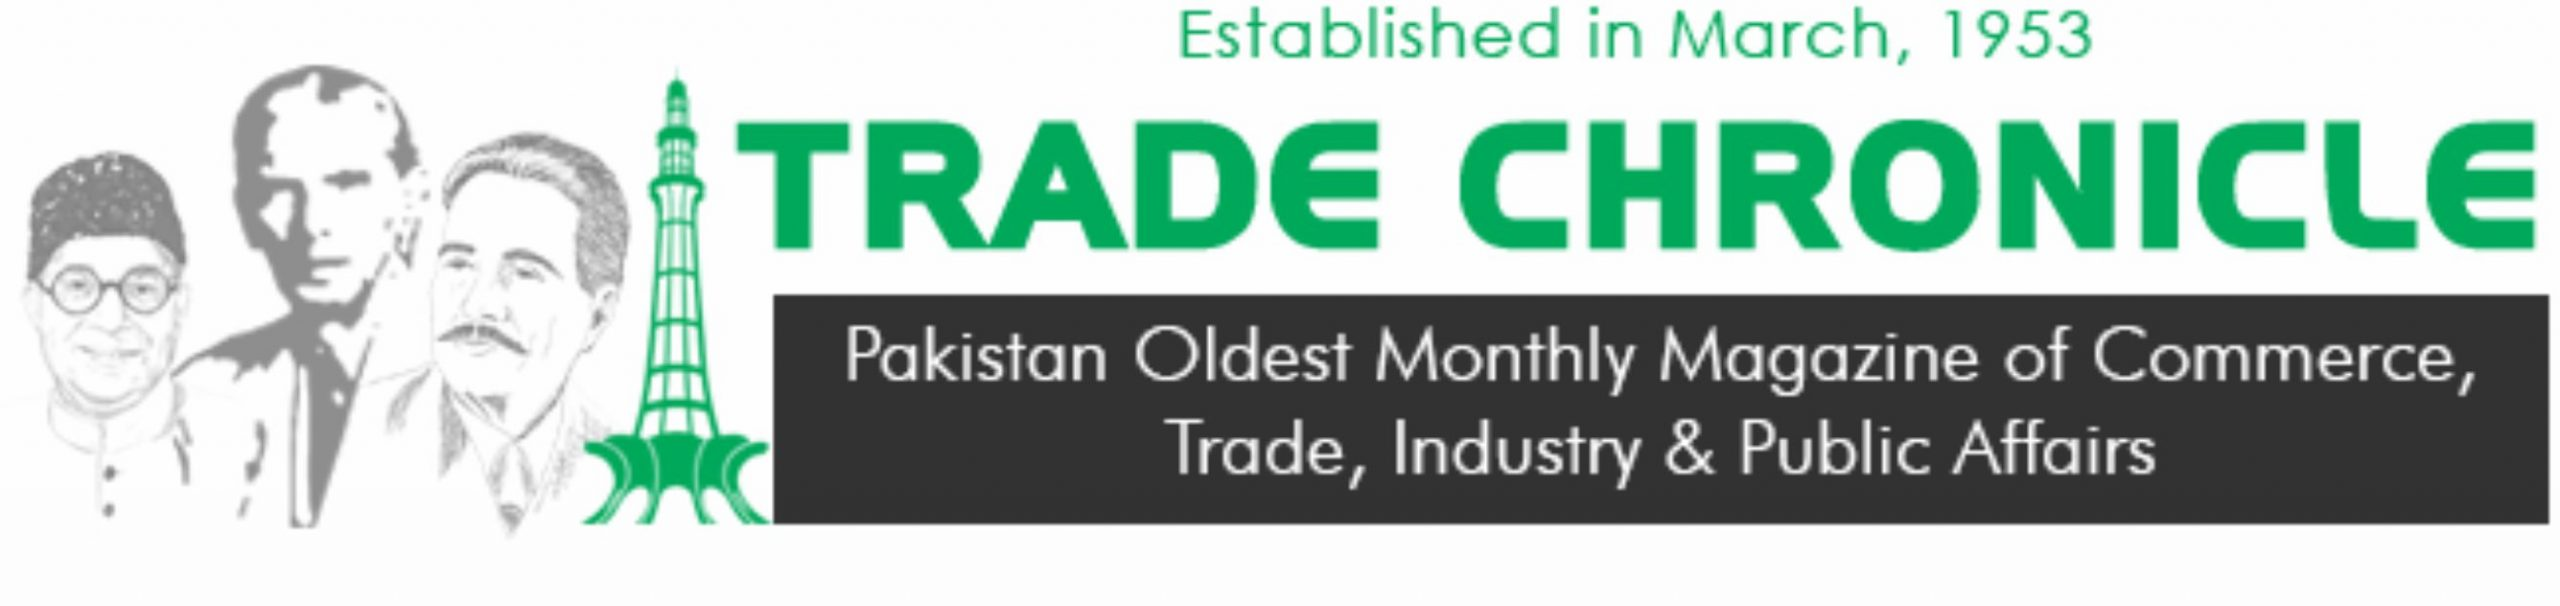 Trade Chronicle Logo